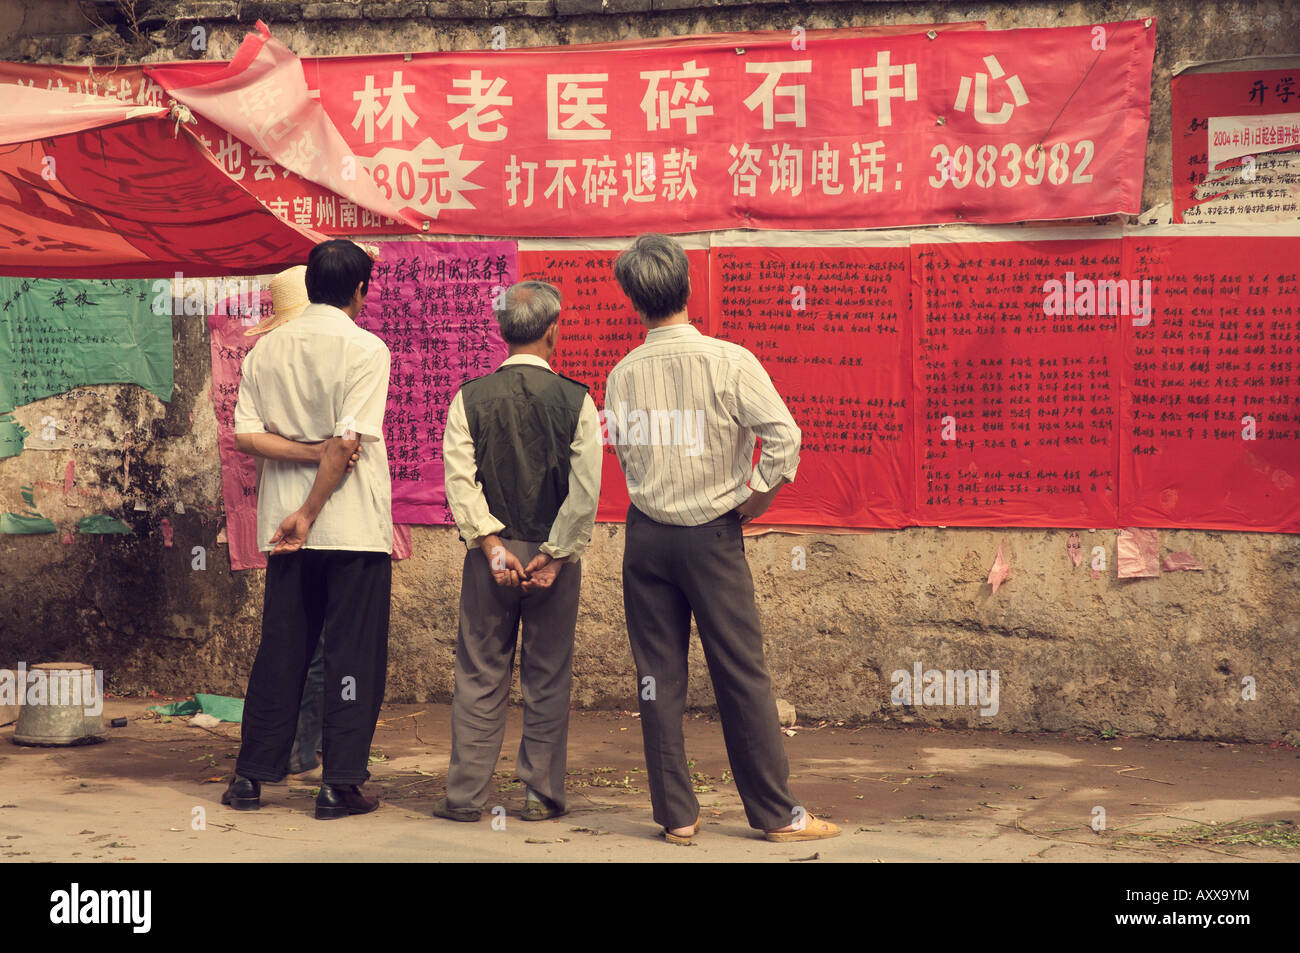 Chinese people reading announcement, Xingping, Guangxi Province, China, Asia - Stock Image